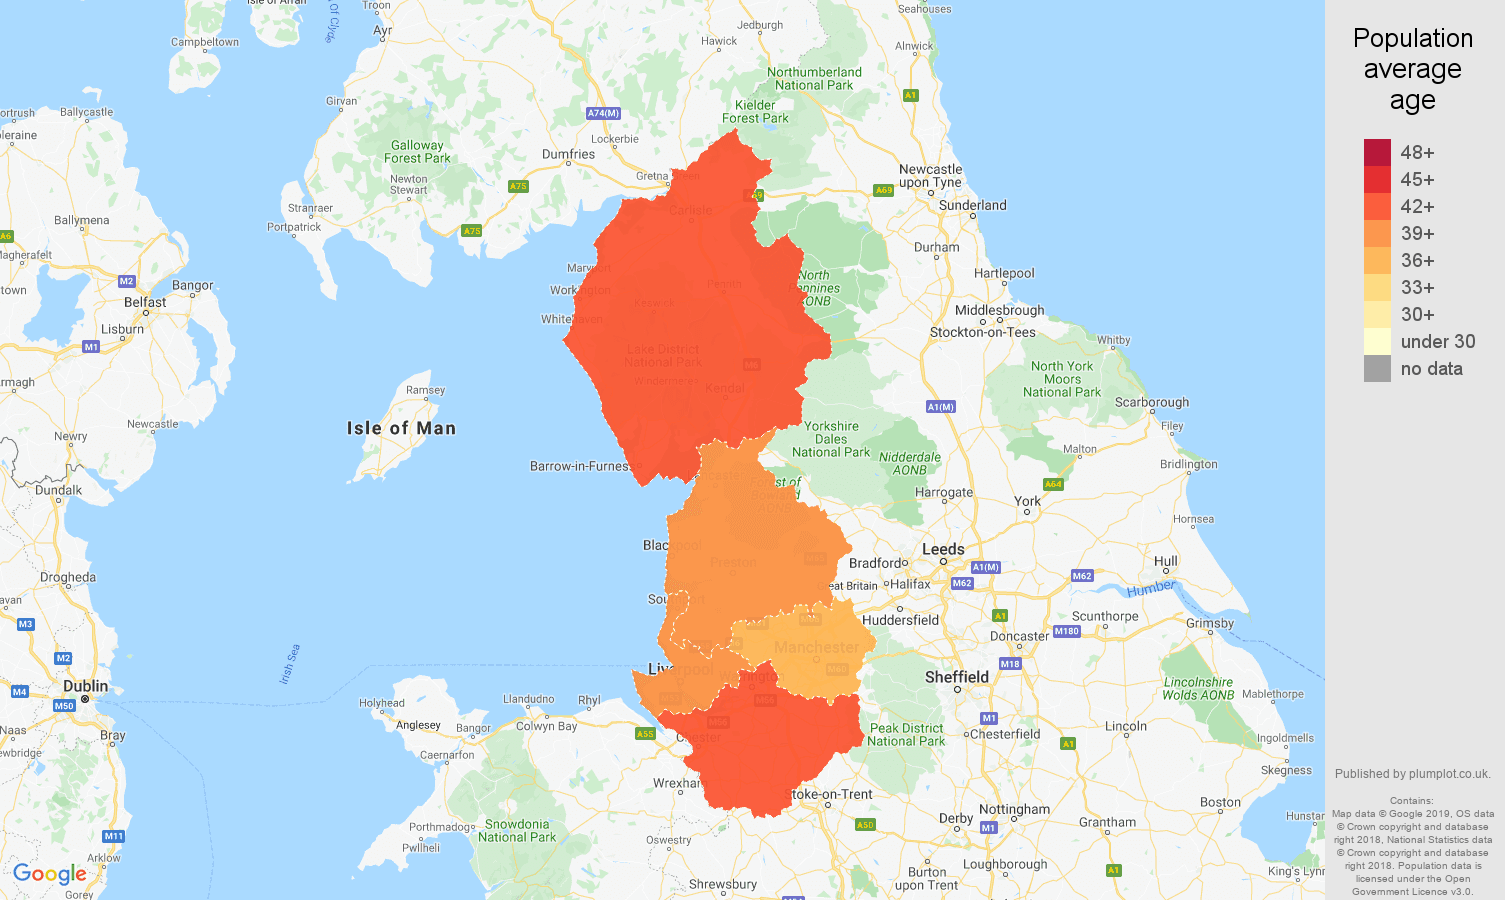 North West population average age map